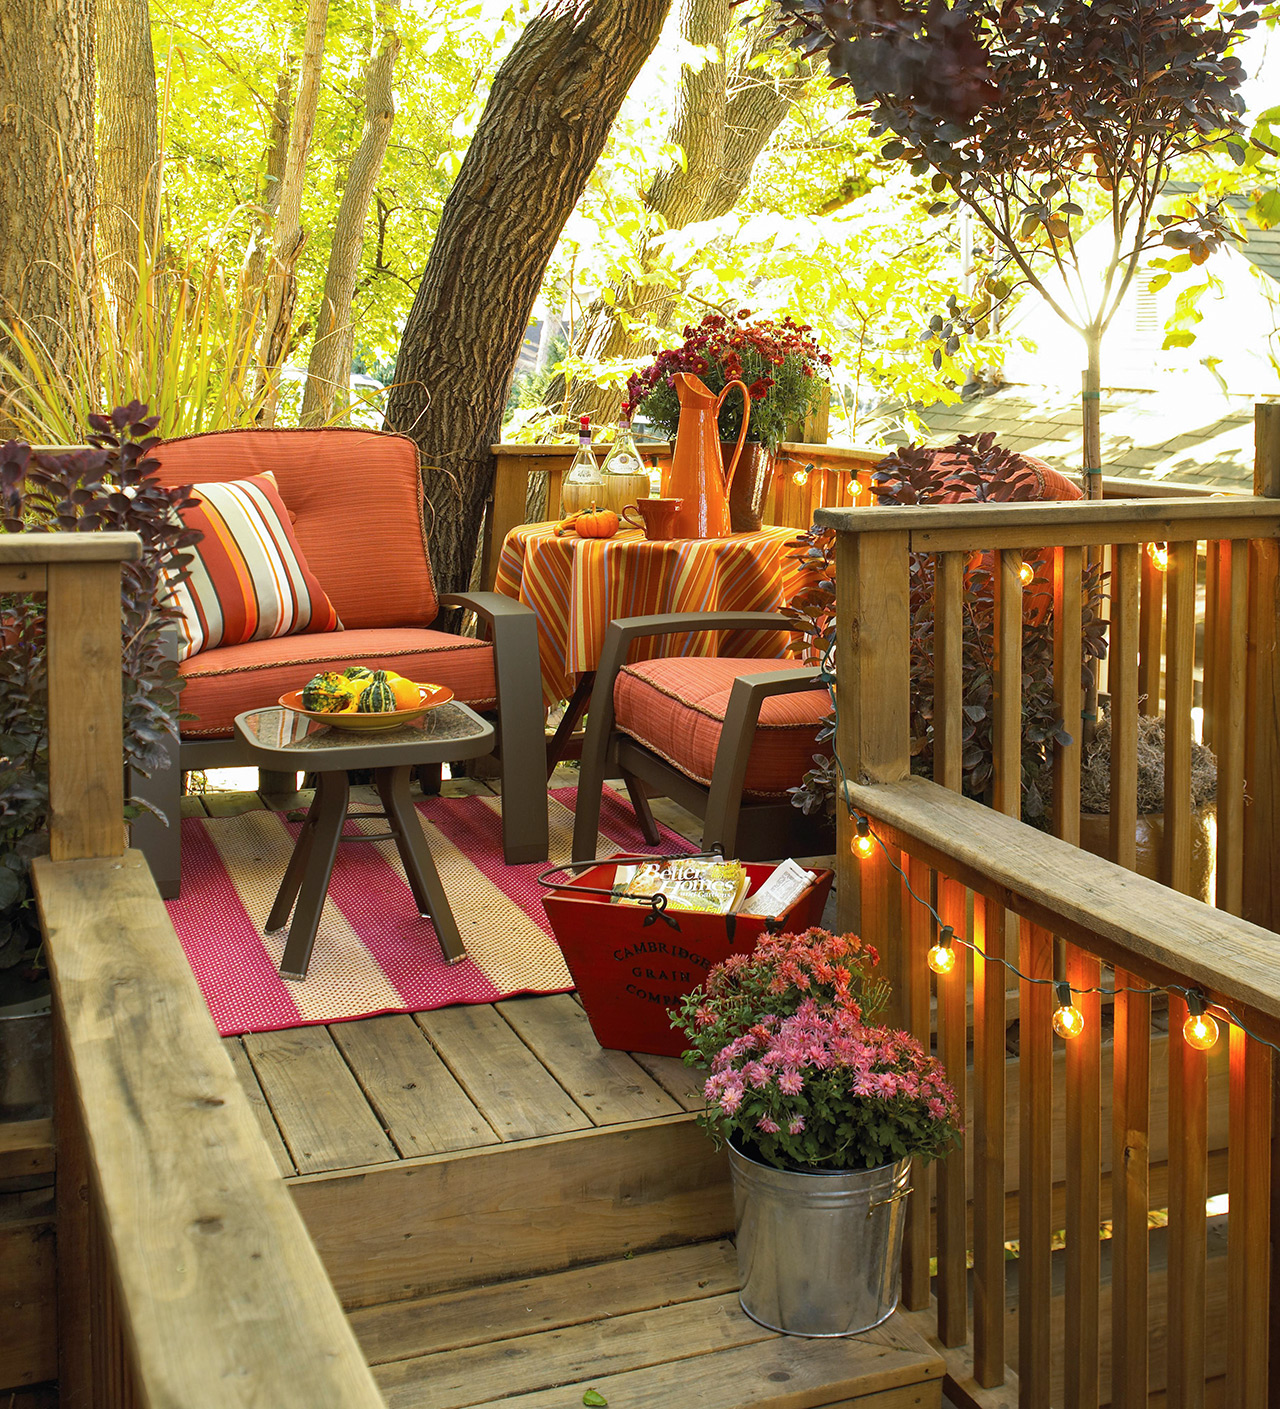 porch deck furniture with fall decor and flowers